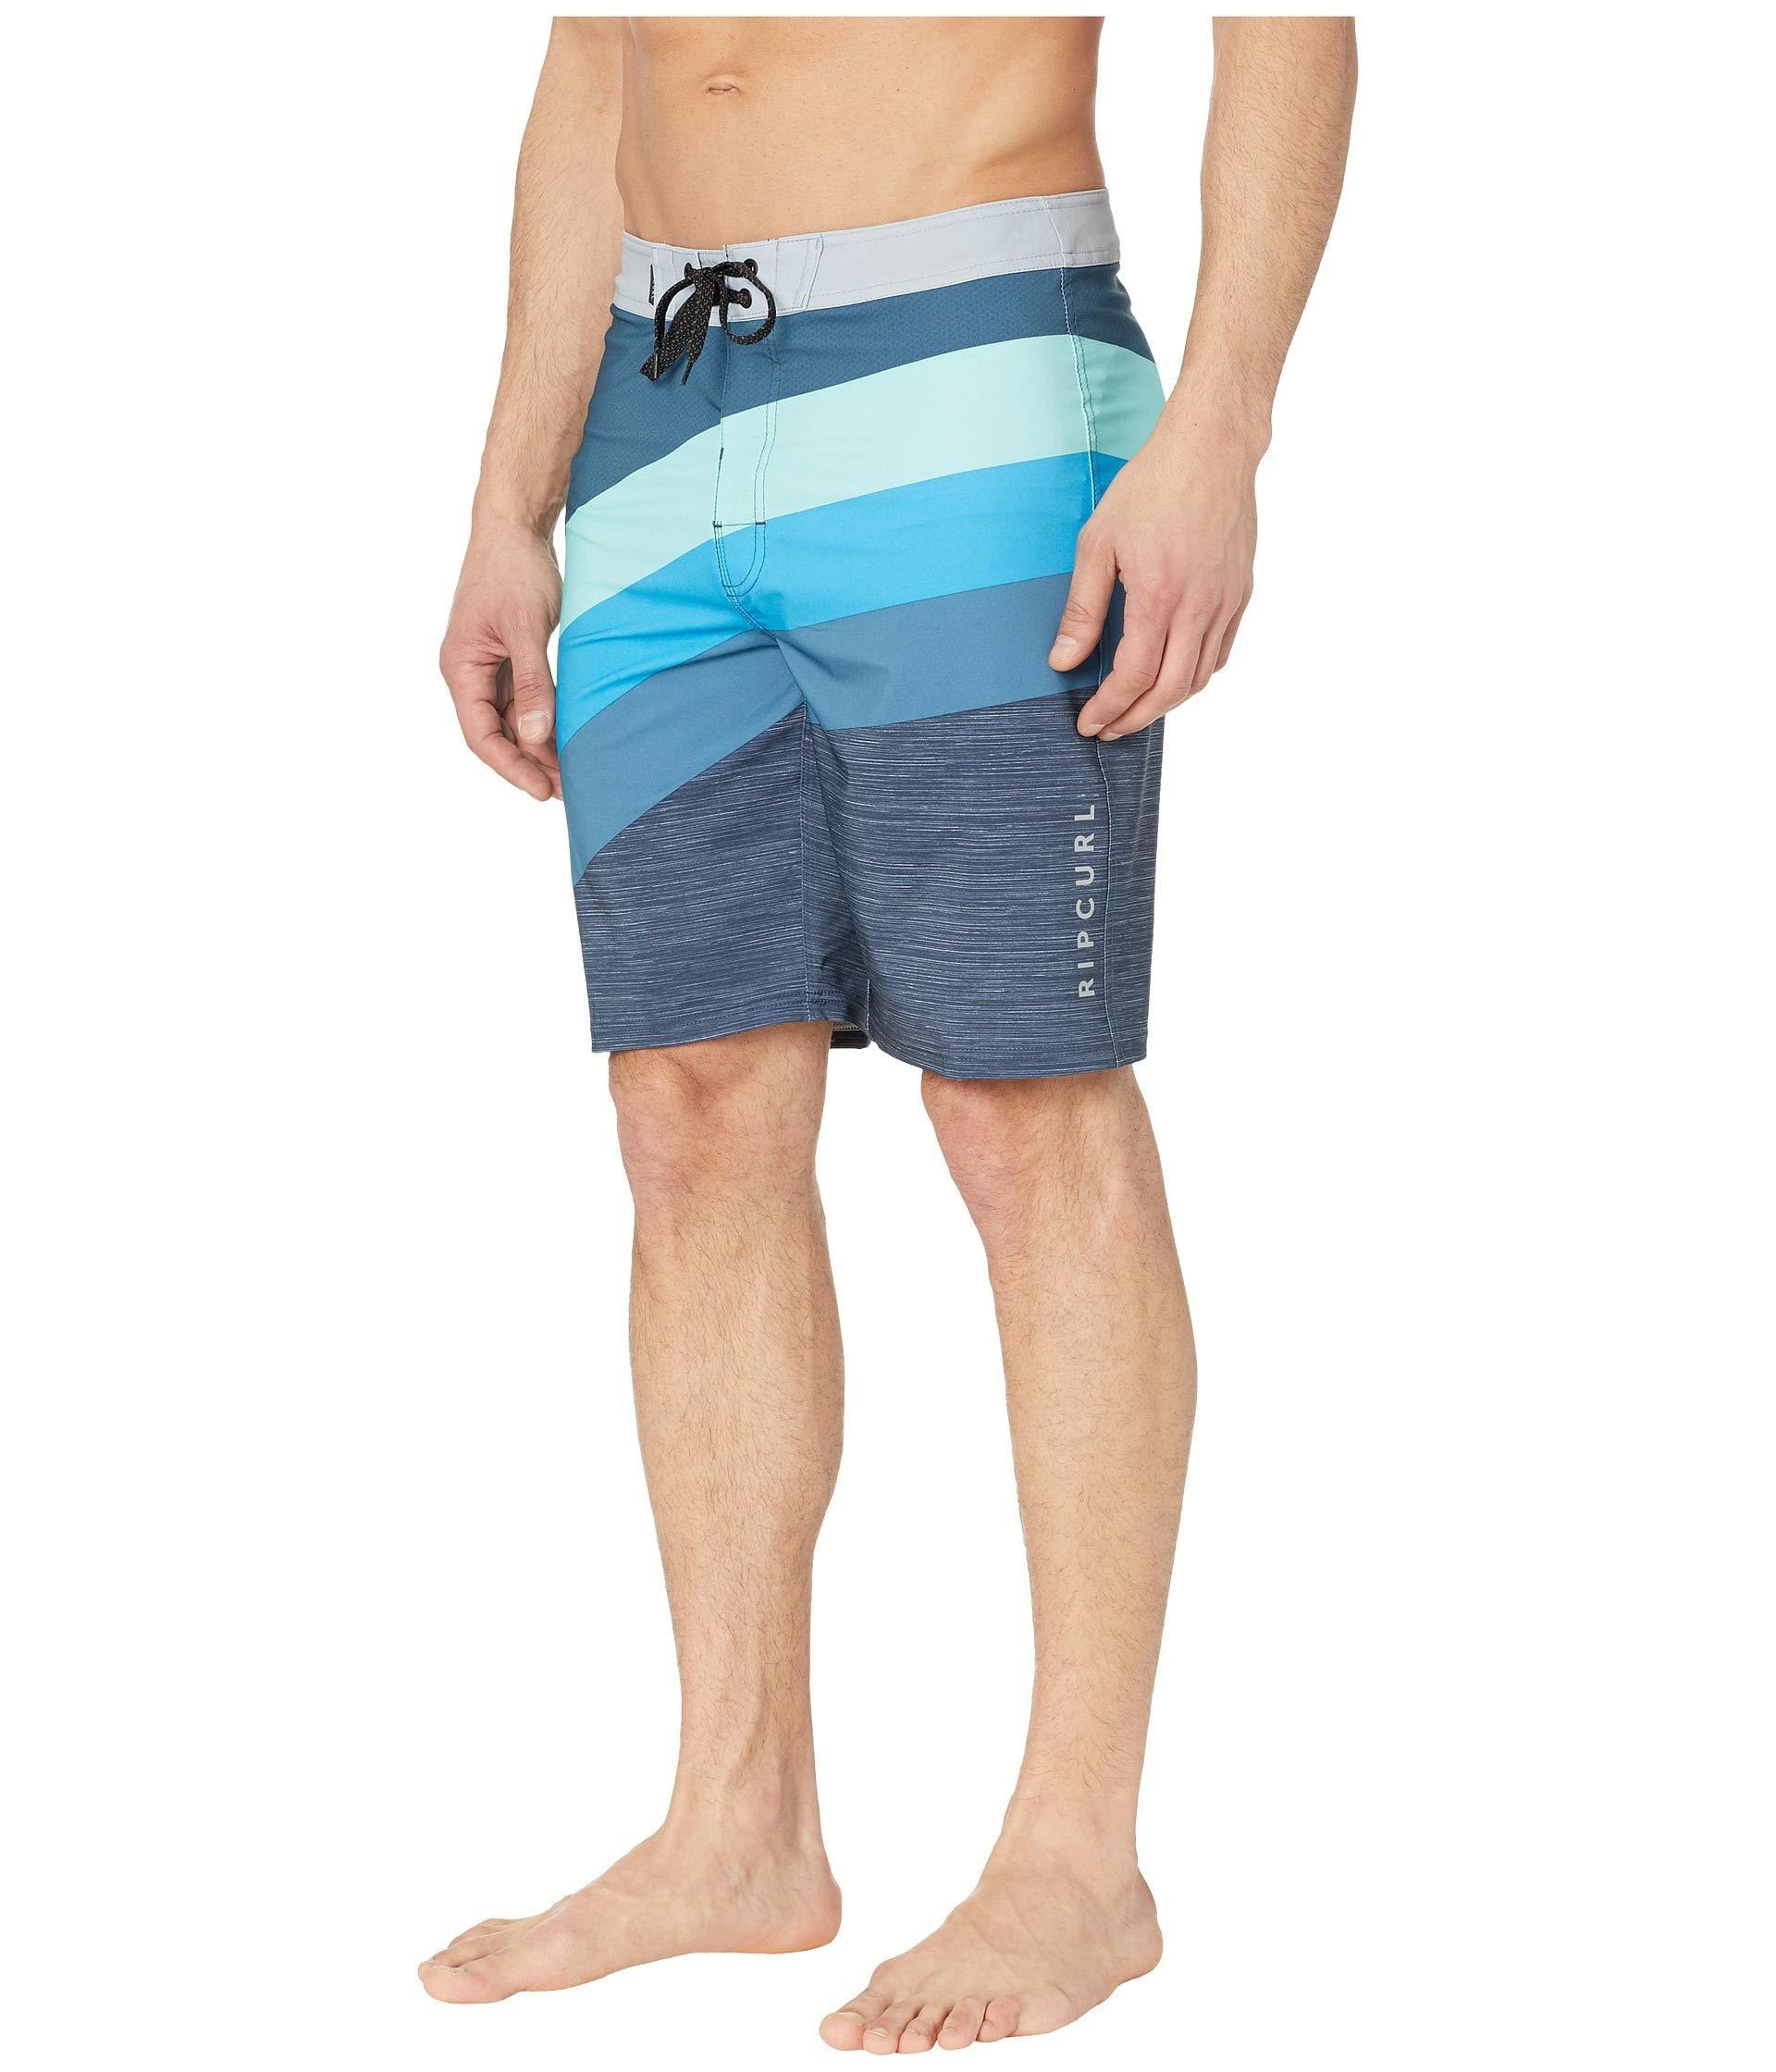 d223f83070c74 Lyst - Rip Curl Mirage React Boardshorts (blue) Men's Swimwear in Blue for  Men